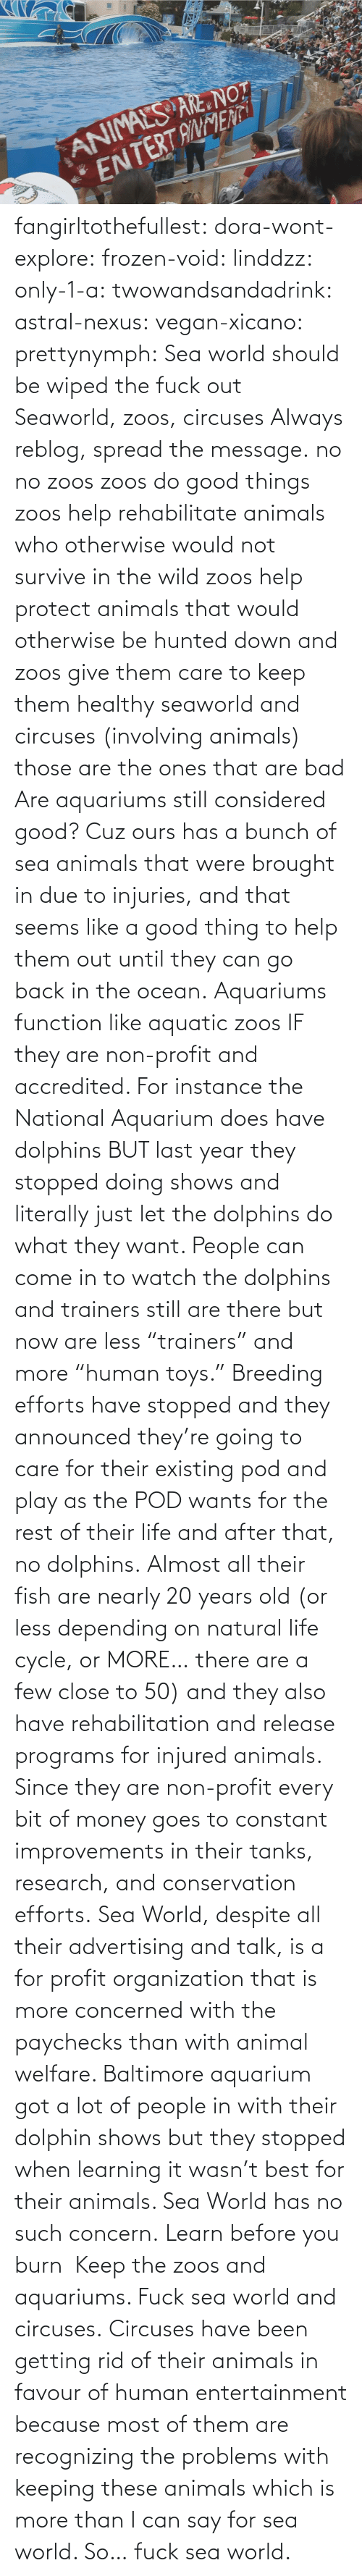 "close: fangirltothefullest:  dora-wont-explore:  frozen-void:  linddzz:  only-1-a:  twowandsandadrink:  astral-nexus:  vegan-xicano:  prettynymph:  Sea world should be wiped the fuck out  Seaworld, zoos, circuses  Always reblog, spread the message.  no no zoos zoos do good things zoos help rehabilitate animals who otherwise would not survive in the wild zoos help protect animals that would otherwise be hunted down and zoos give them care to keep them healthy seaworld and circuses (involving animals) those are the ones that are bad  Are aquariums still considered good? Cuz ours has a bunch of sea animals that were brought in due to injuries, and that seems like a good thing to help them out until they can go back in the ocean.  Aquariums function like aquatic zoos IF they are non-profit and accredited. For instance the National Aquarium does have dolphins BUT last year they stopped doing shows and literally just let the dolphins do what they want. People can come in to watch the dolphins and trainers still are there but now are less ""trainers"" and more ""human toys."" Breeding efforts have stopped and they announced they're going to care for their existing pod and play as the POD wants for the rest of their life and after that, no dolphins. Almost all their fish are nearly 20 years old (or less depending on natural life cycle, or MORE… there are a few close to 50) and they also have rehabilitation and release programs for injured animals. Since they are non-profit every bit of money goes to constant improvements in their tanks, research, and conservation efforts. Sea World, despite all their advertising and talk, is a for profit organization that is more concerned with the paychecks than with animal welfare. Baltimore aquarium got a lot of people in with their dolphin shows but they stopped when learning it wasn't best for their animals. Sea World has no such concern.  Learn before you burn   Keep the zoos and aquariums. Fuck sea world and circuses.  Circuses have been getting rid of  their animals in favour of human entertainment because most of them are recognizing the problems with keeping these animals which is more than I can say for sea world. So… fuck sea world."